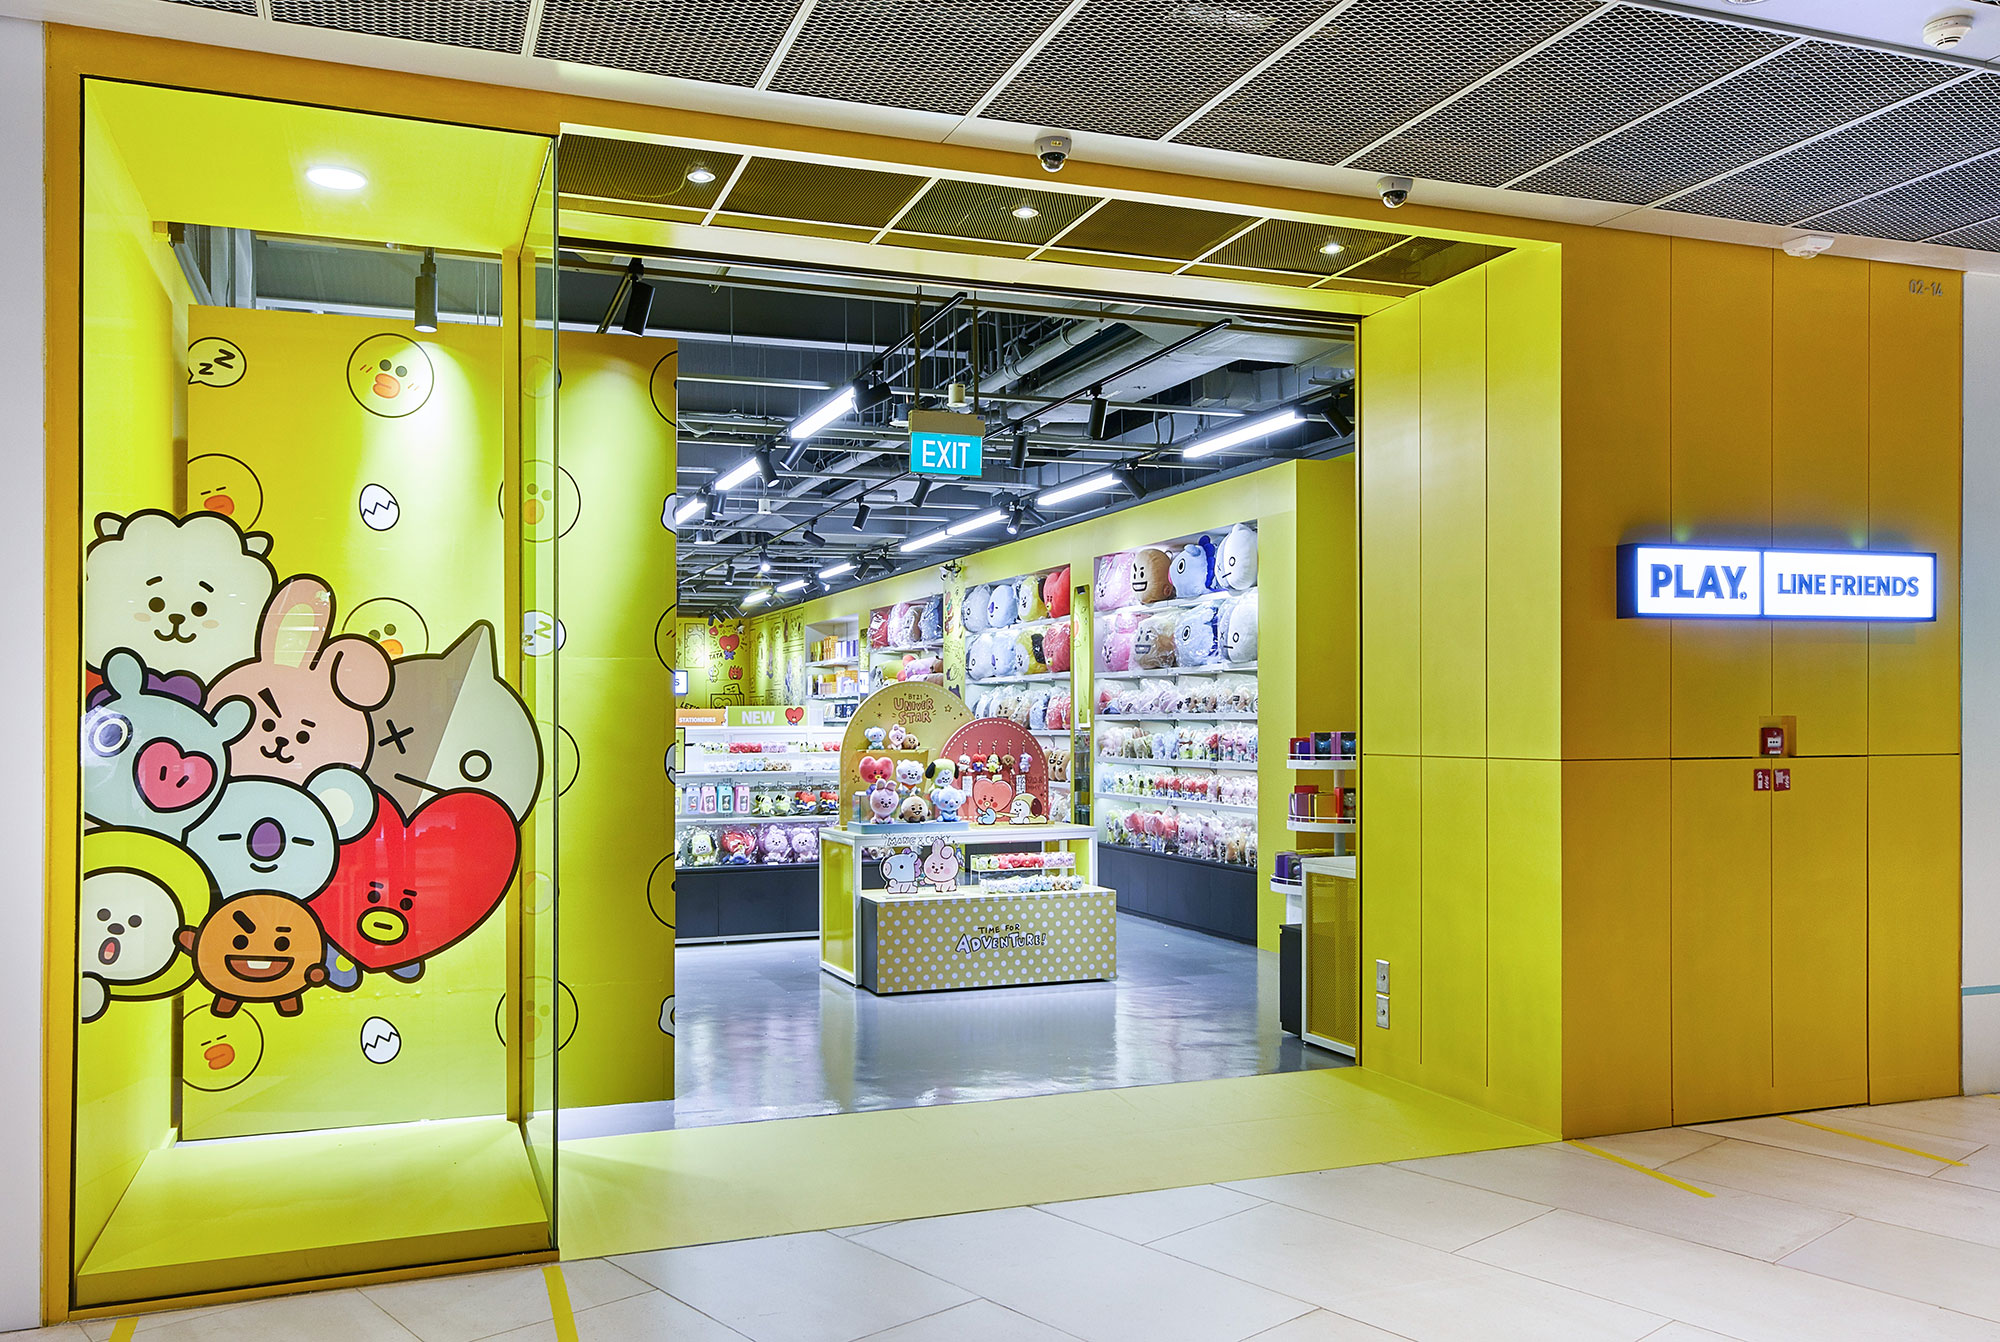 PHOTO - PLAY LINE FRIENDS FLAGSHIP STORE AT FUNAN, SINGAPORE